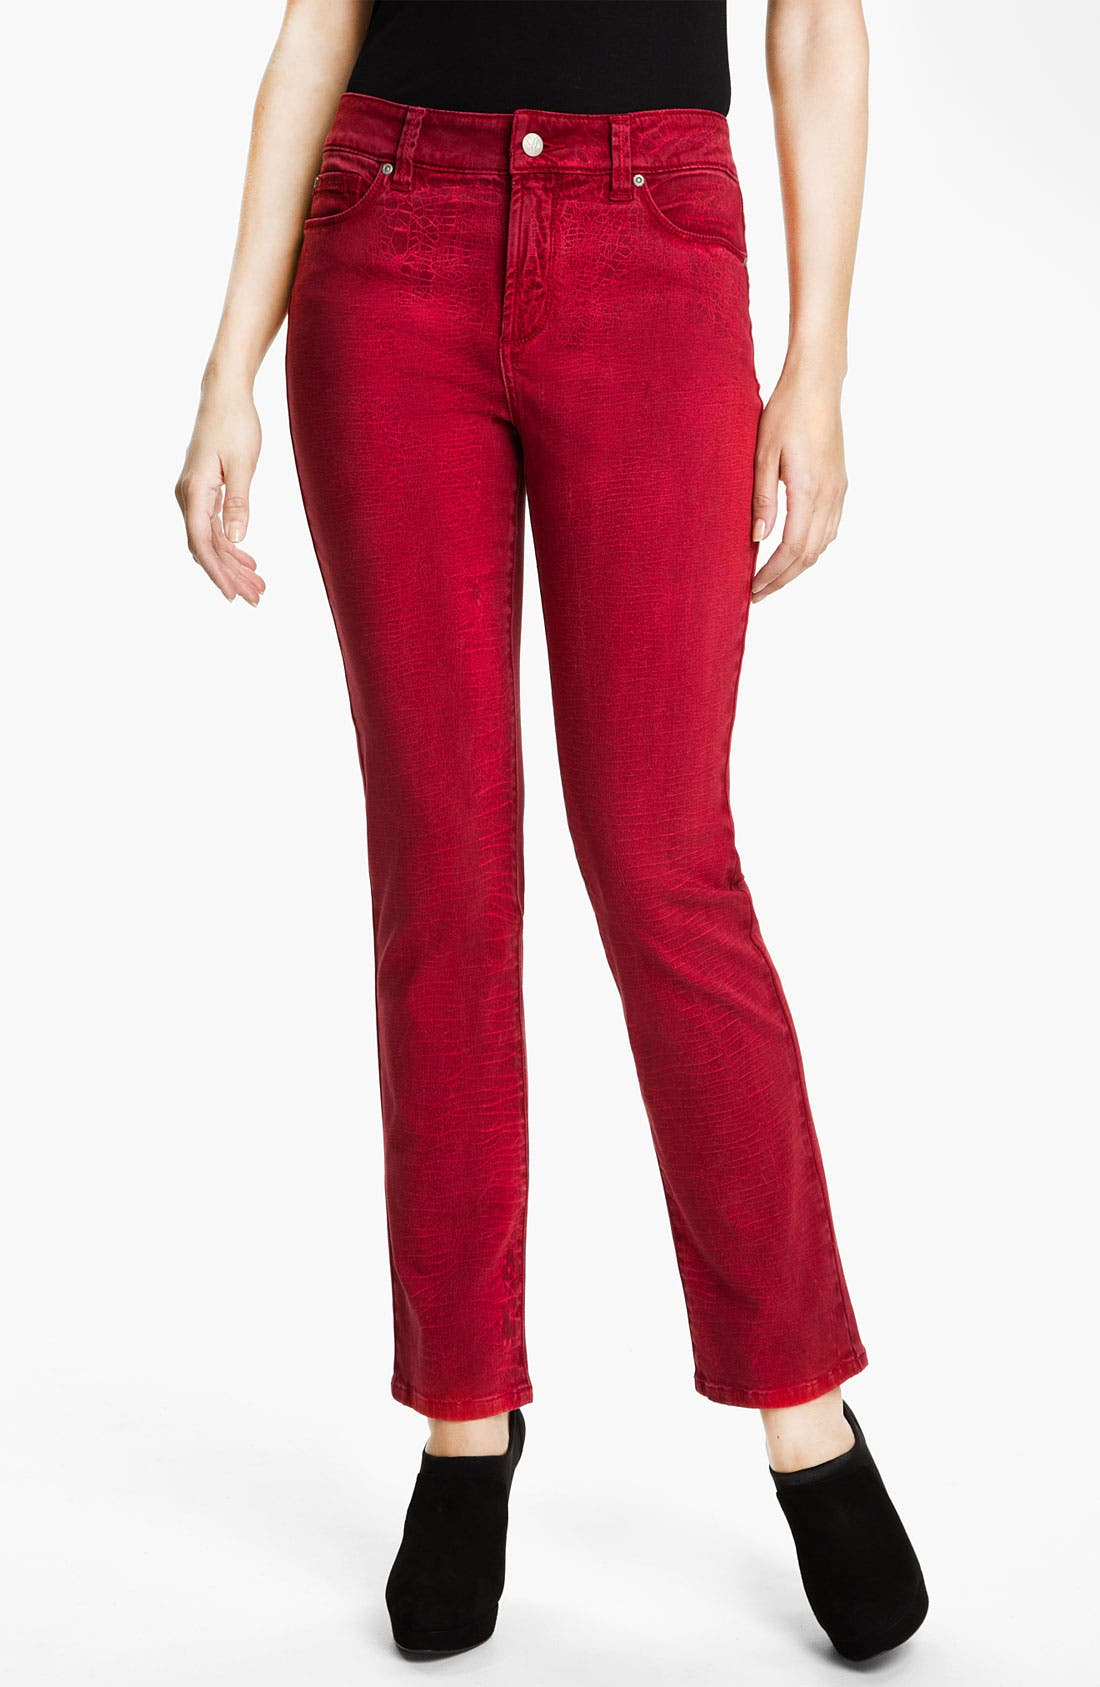 Alternate Image 1 Selected - NYDJ 'Sheri - Shattered' Print Skinny Twill Jeans (Petite)